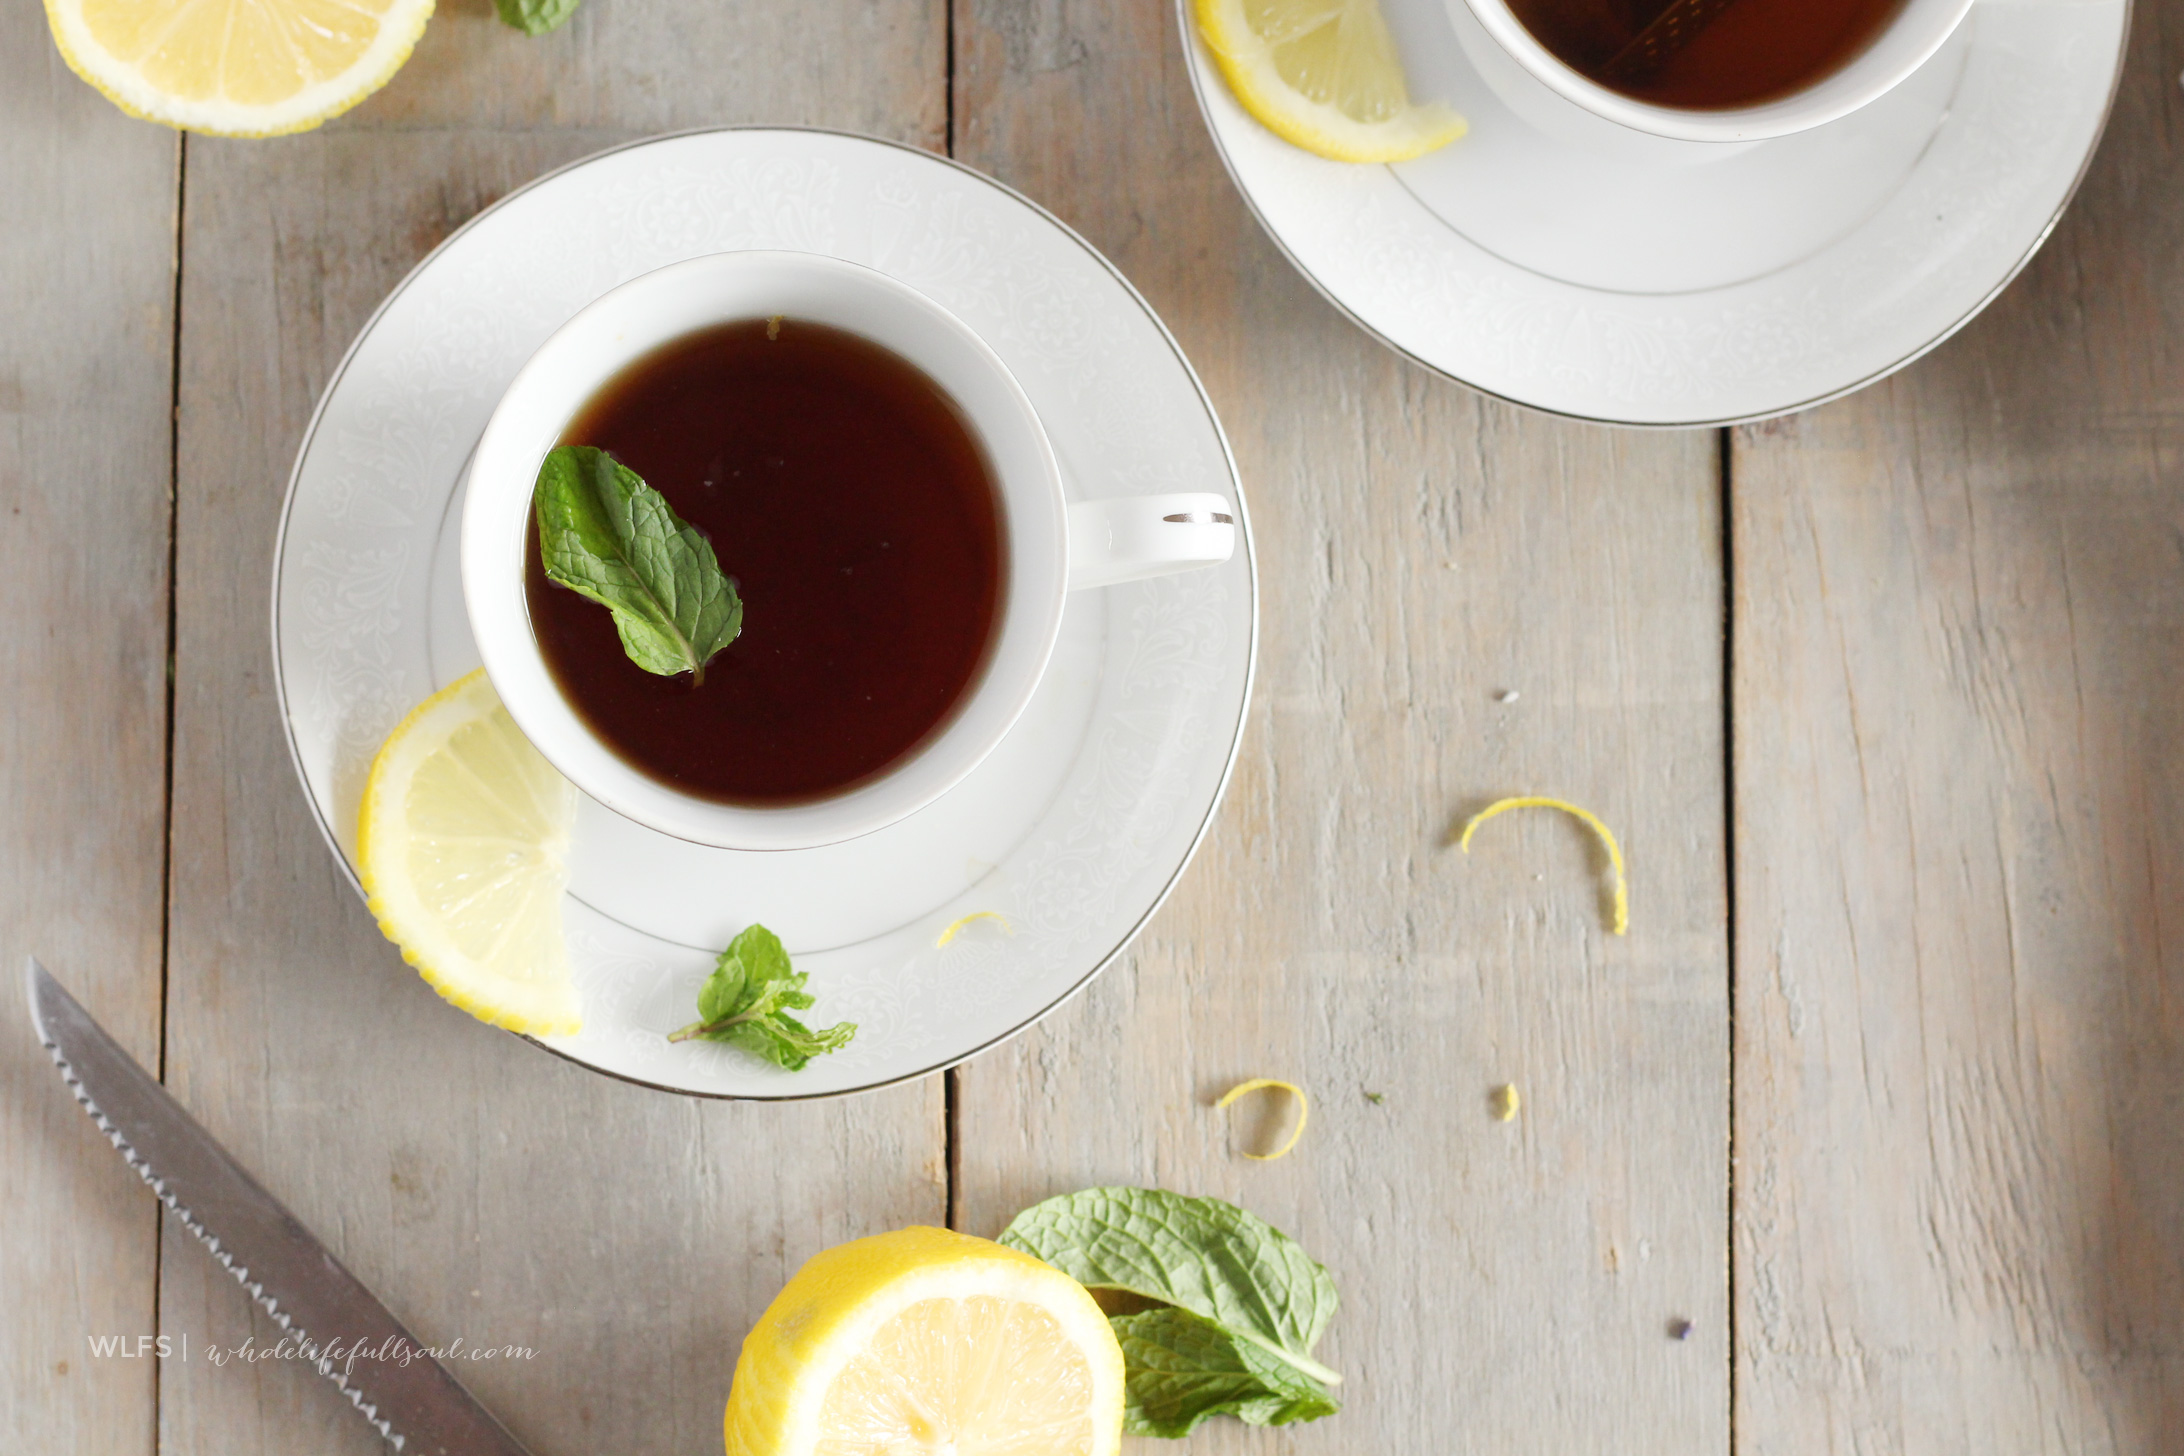 Dandelion Root Tea with Mint